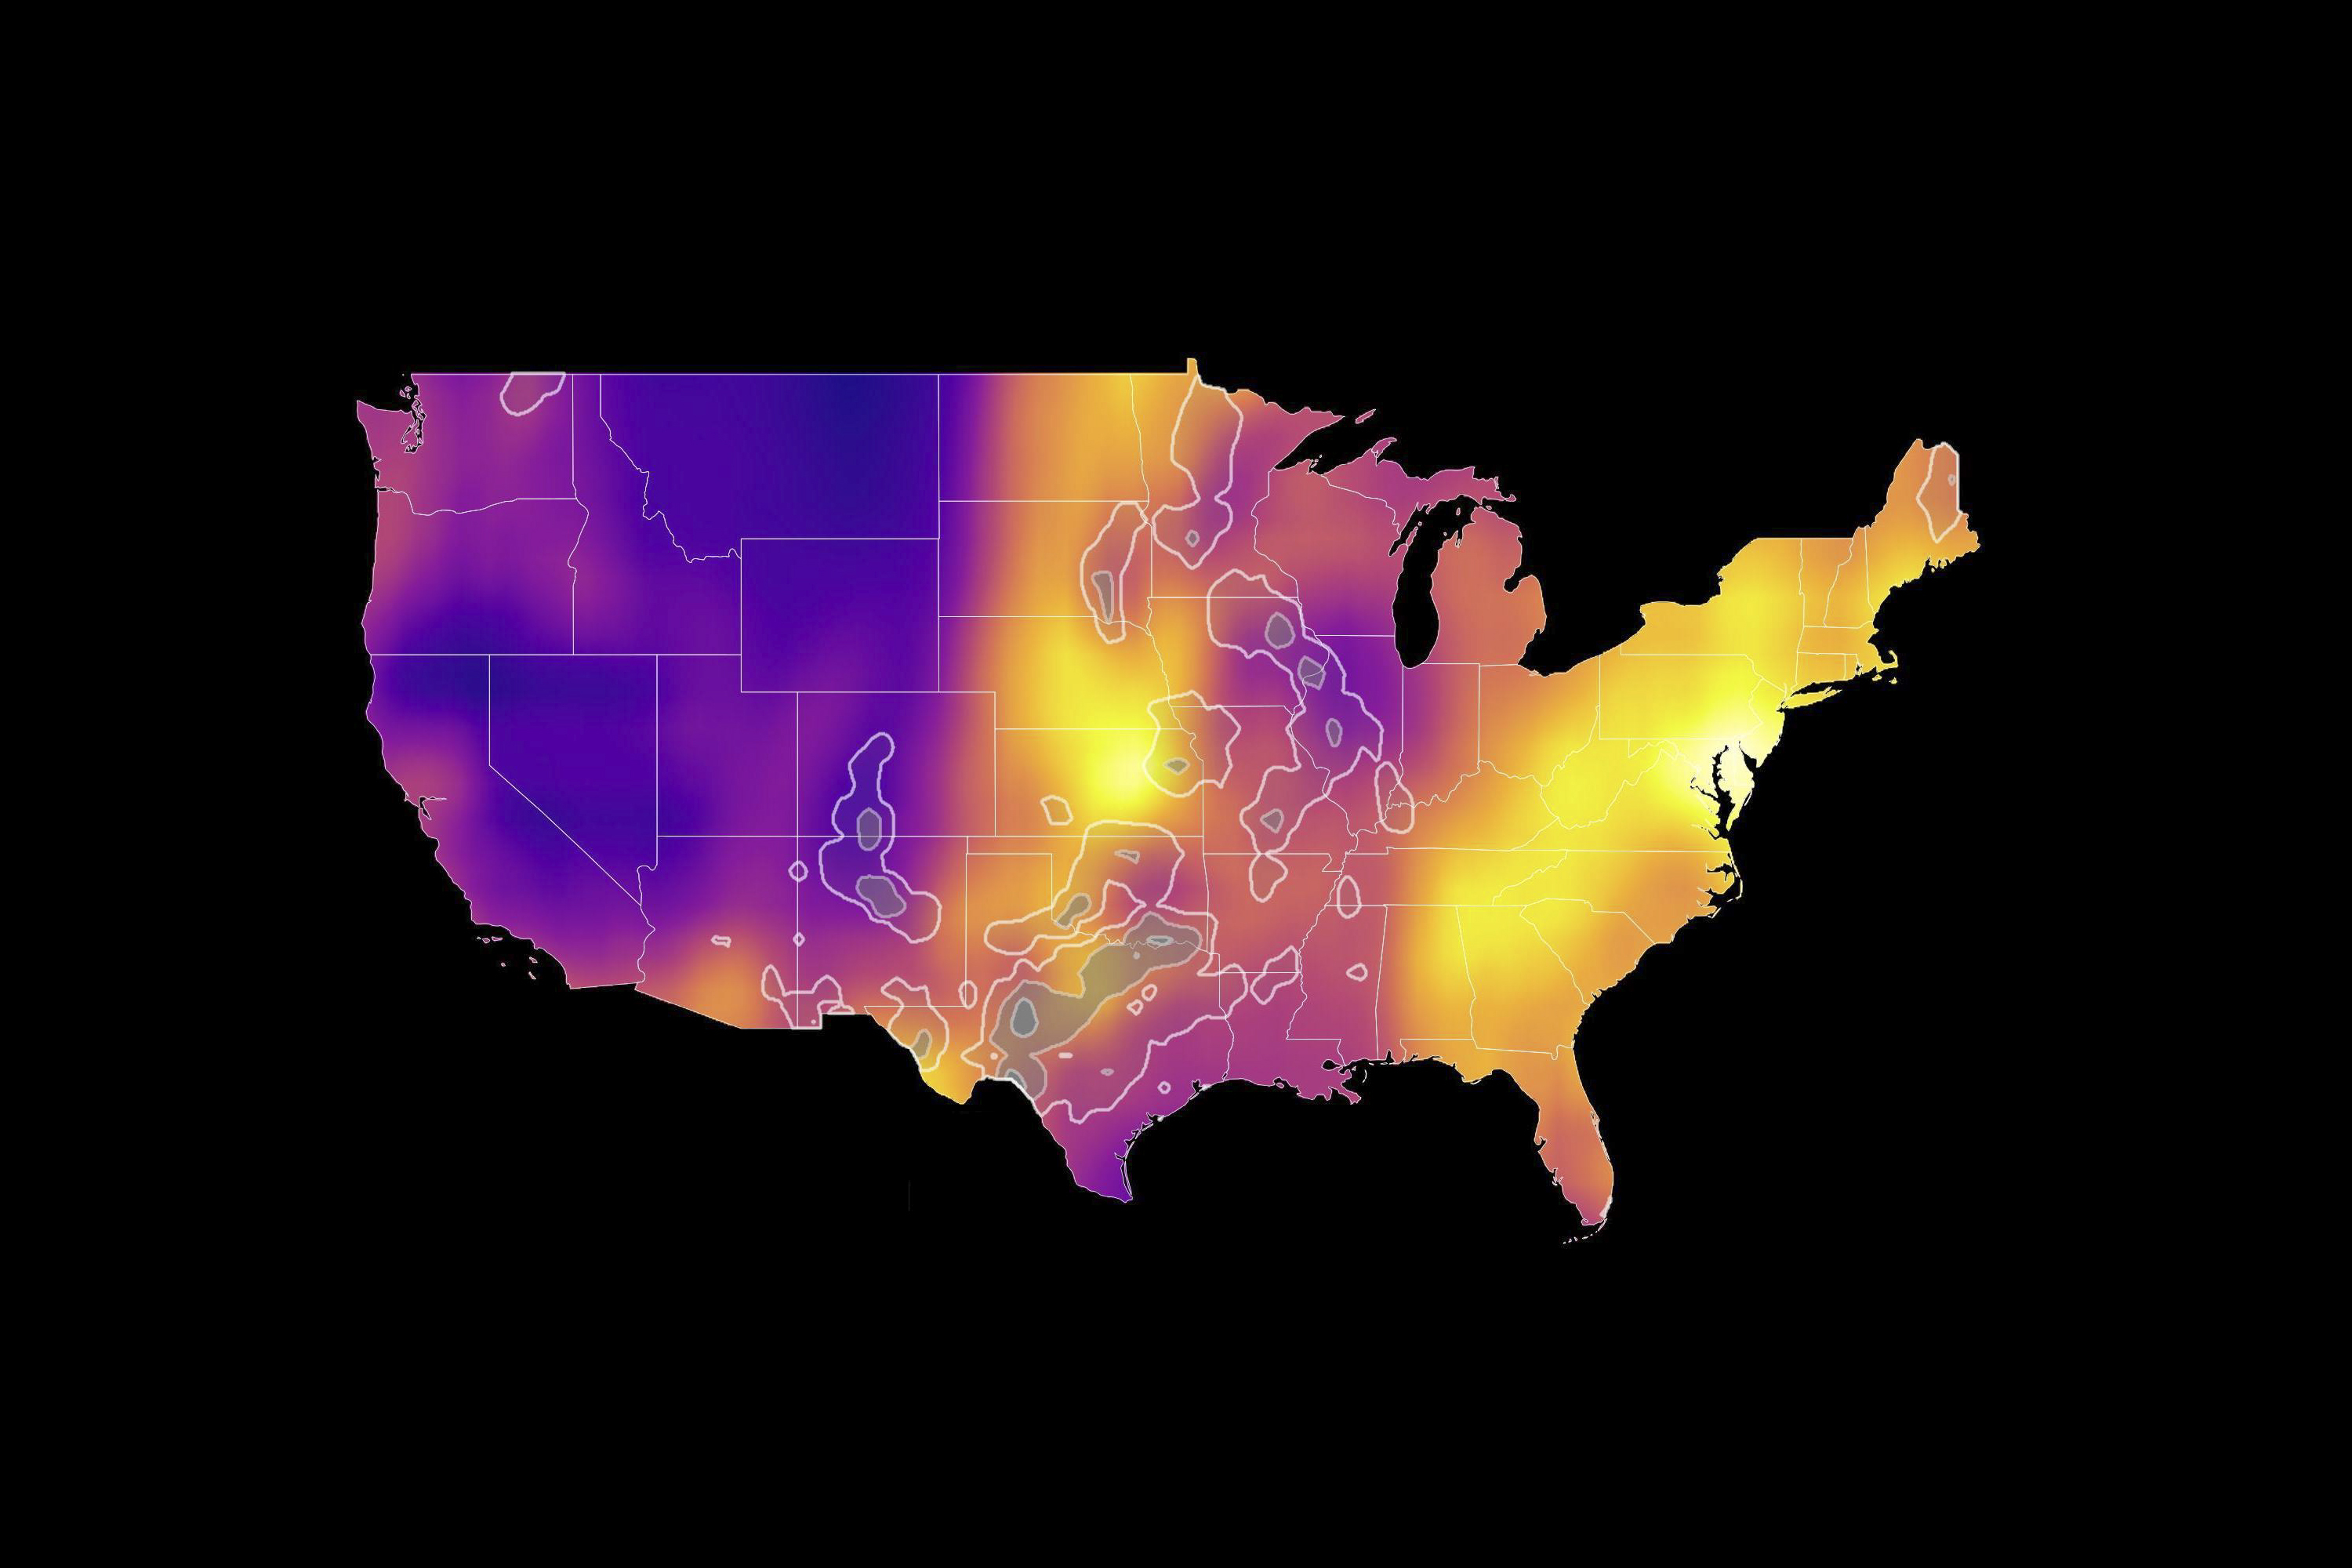 A map of the United States with colored bands showing the distribution of migratory birds.